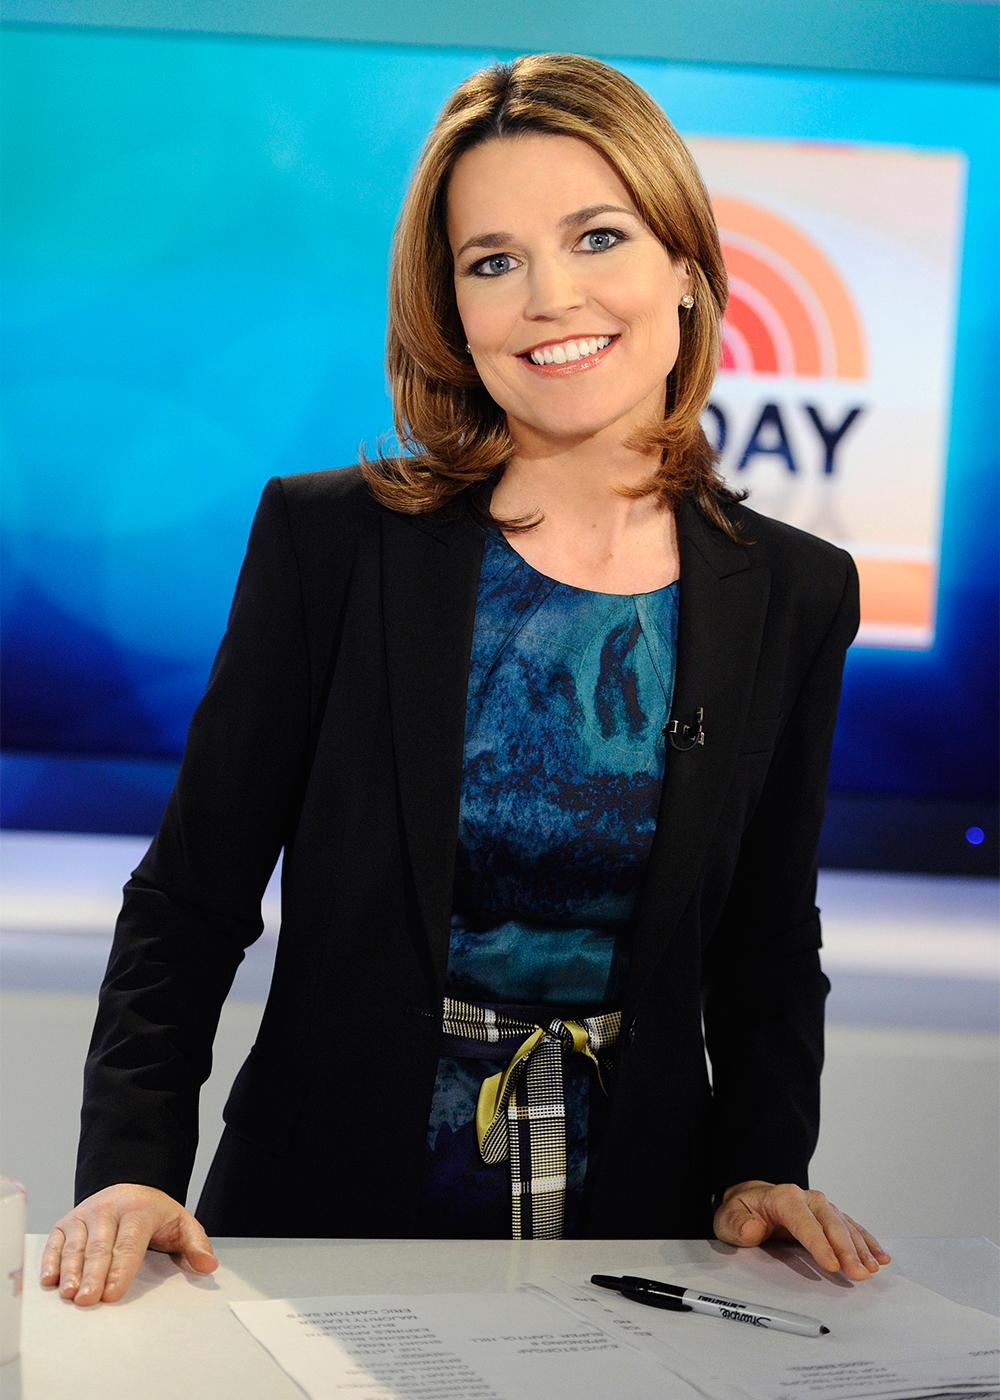 Savannah Guthrie To Anchor 'NBC Nightly News' Monday Evening